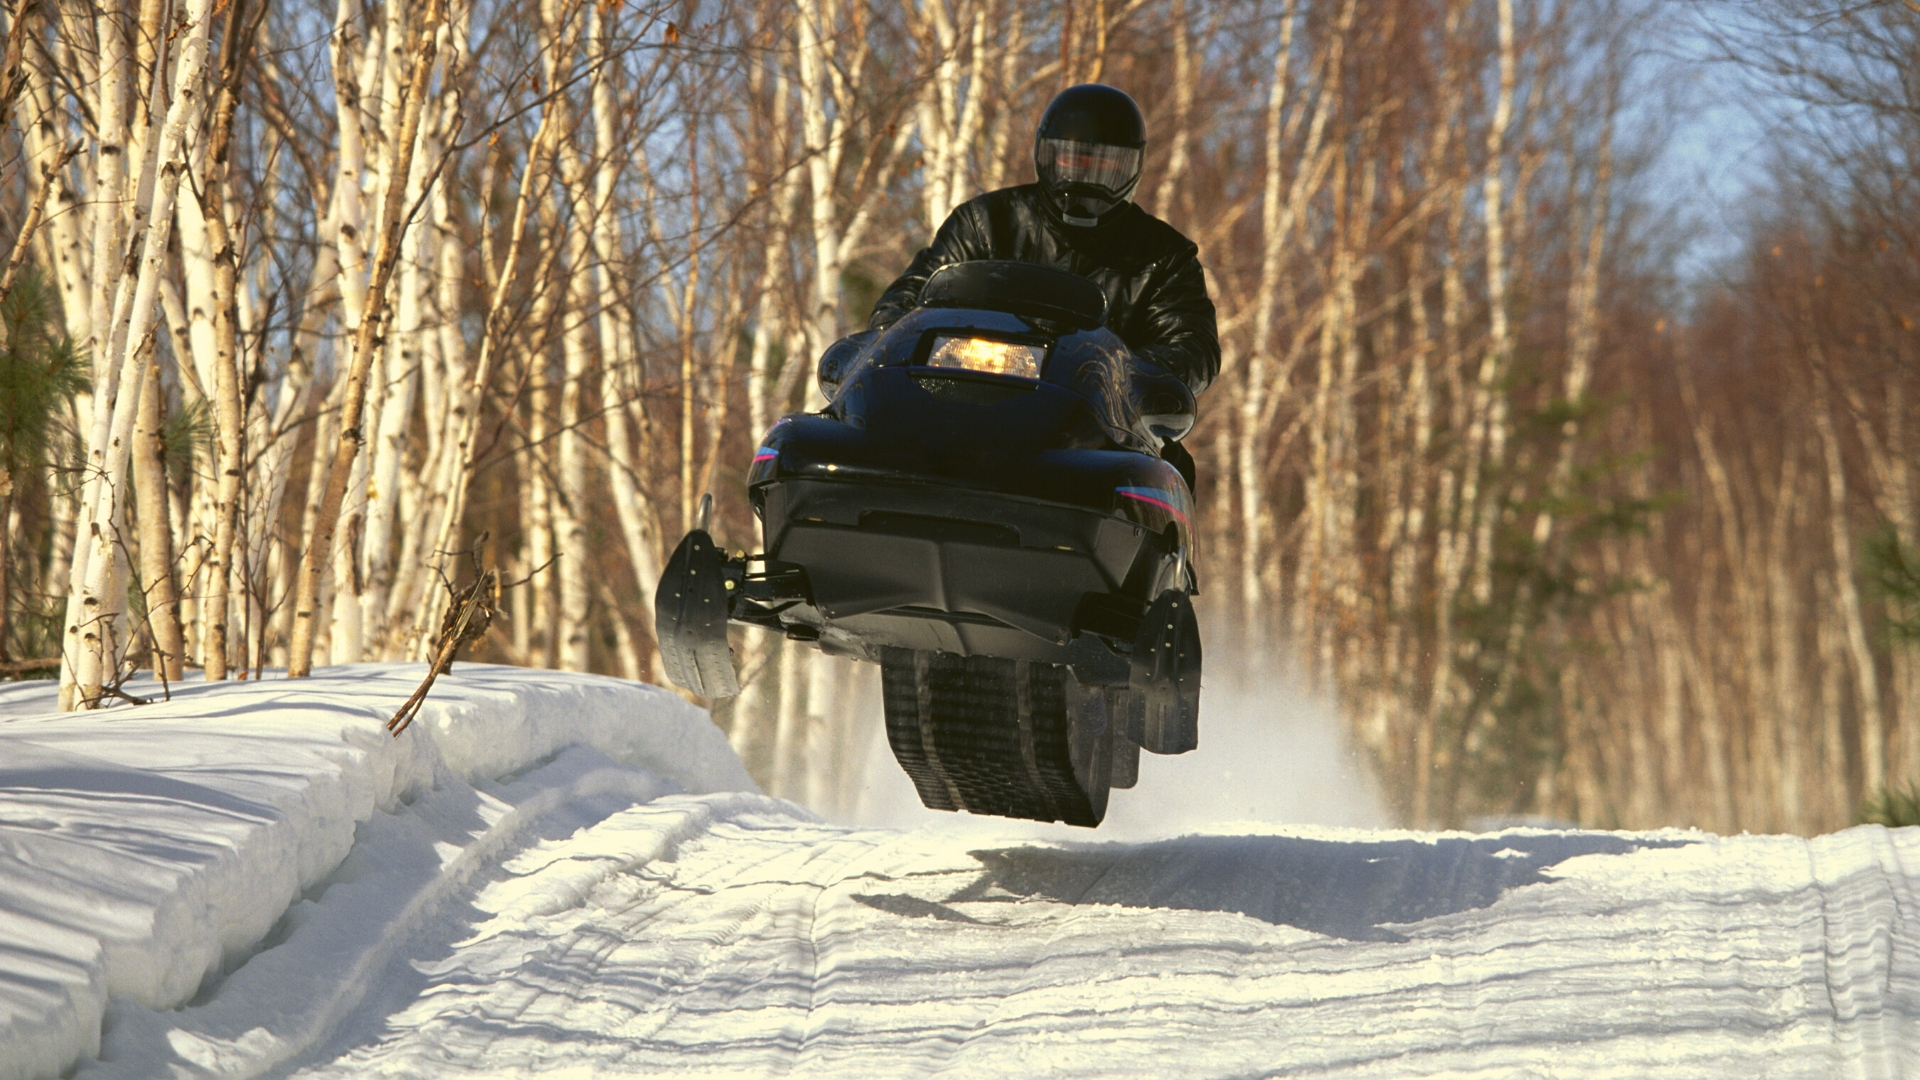 Cool snowmobile pictures